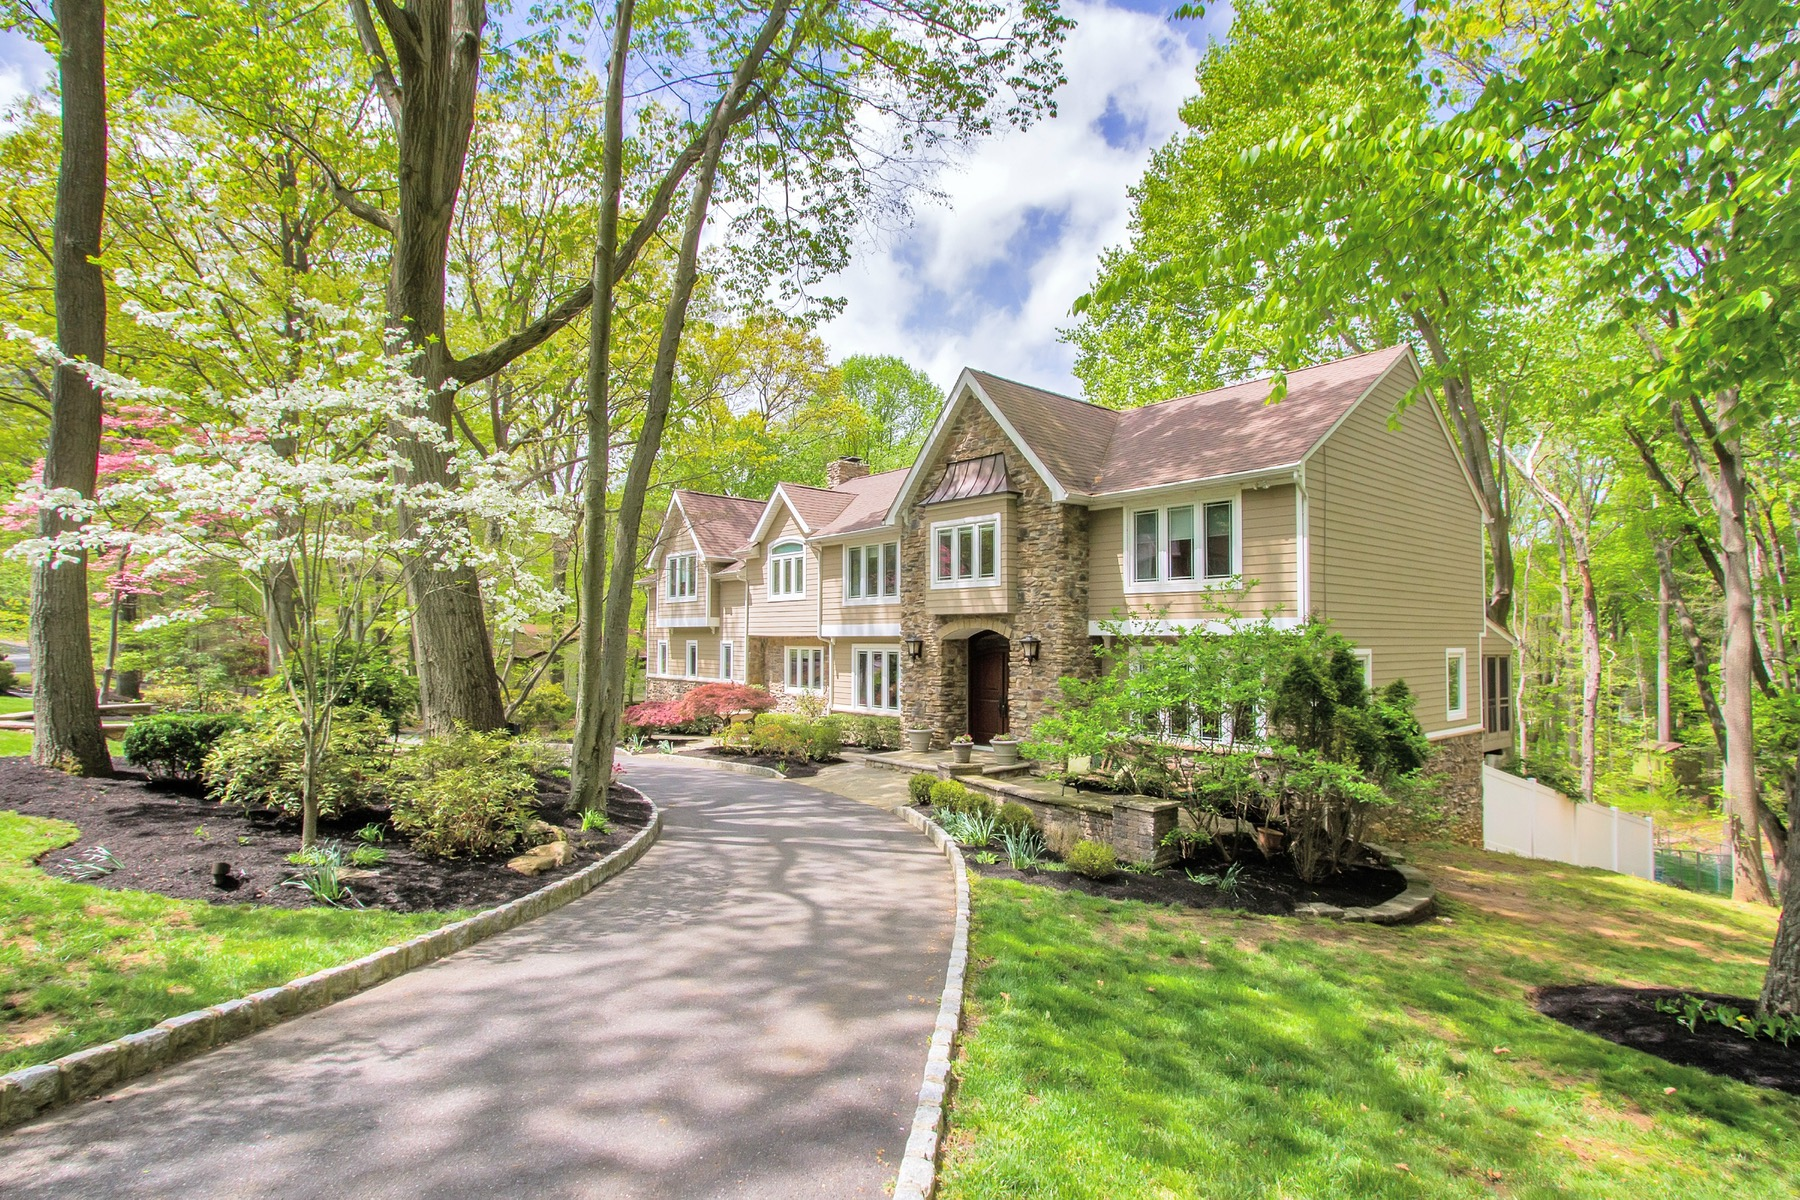 Villa per Vendita alle ore Extensively Remodeled Custom Colonial 32 Seven Oaks Circle Holmdel, New Jersey, 07733 Stati Uniti